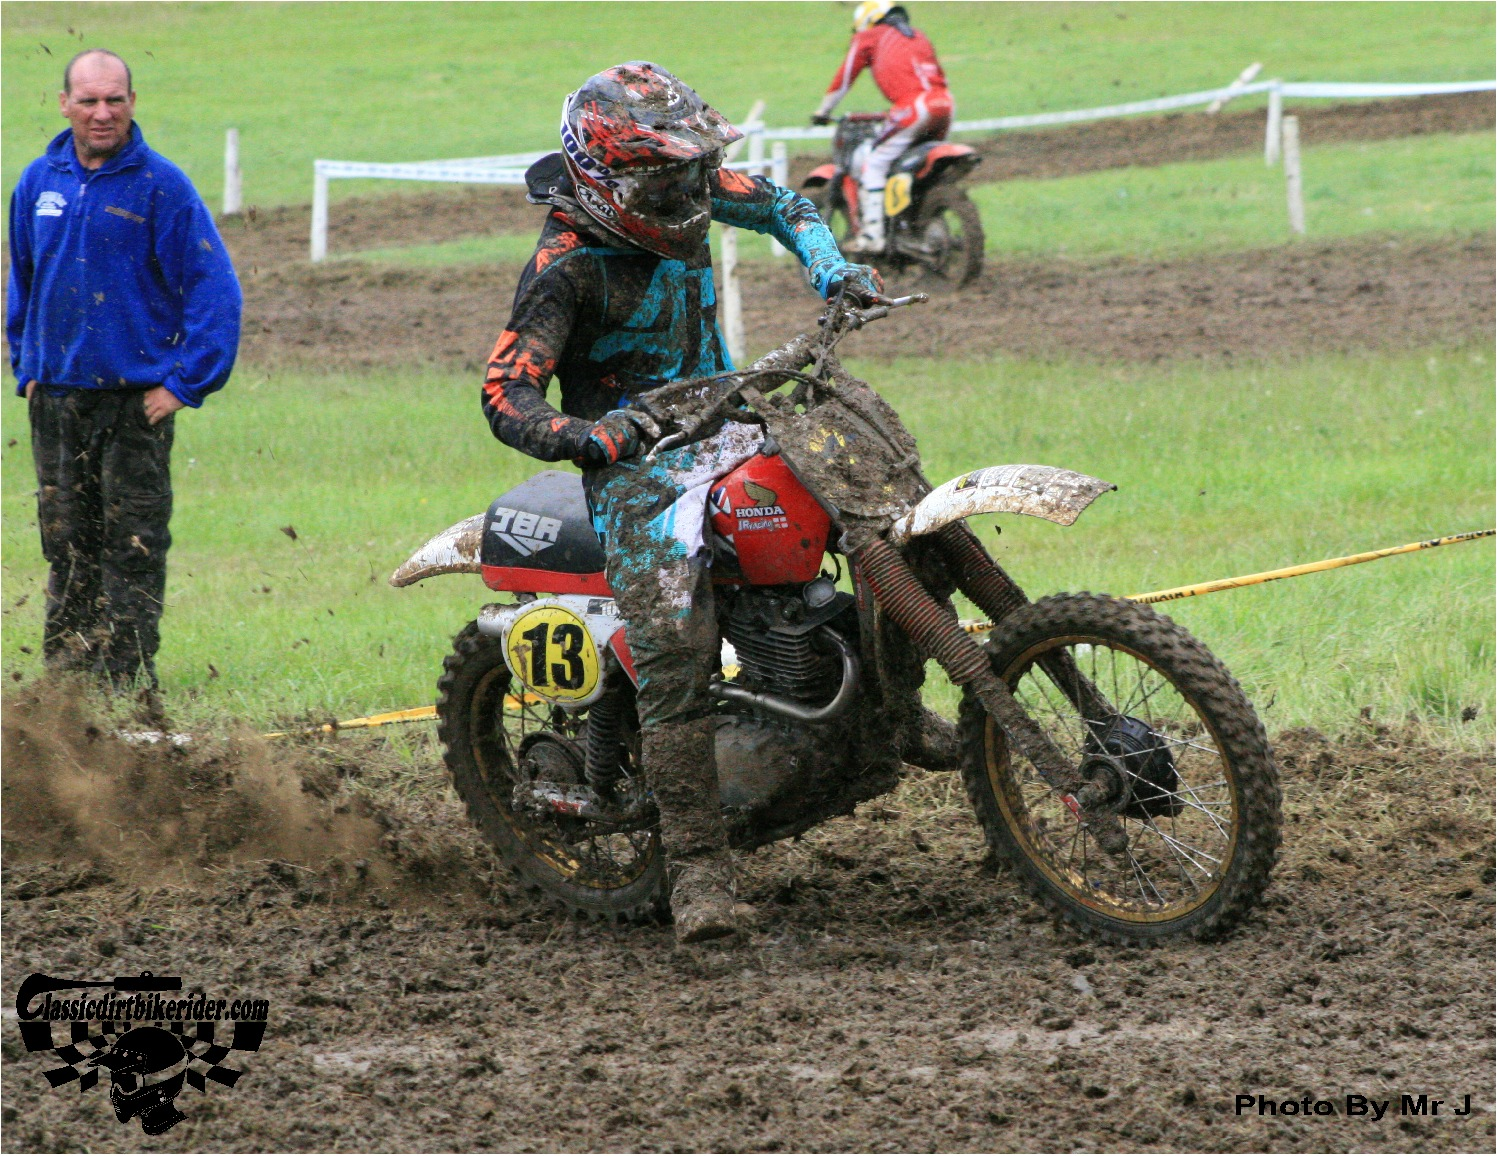 king of the castle 2015 photos Farleigh Castle twinshock motocross classicdirtbikerider.com 115